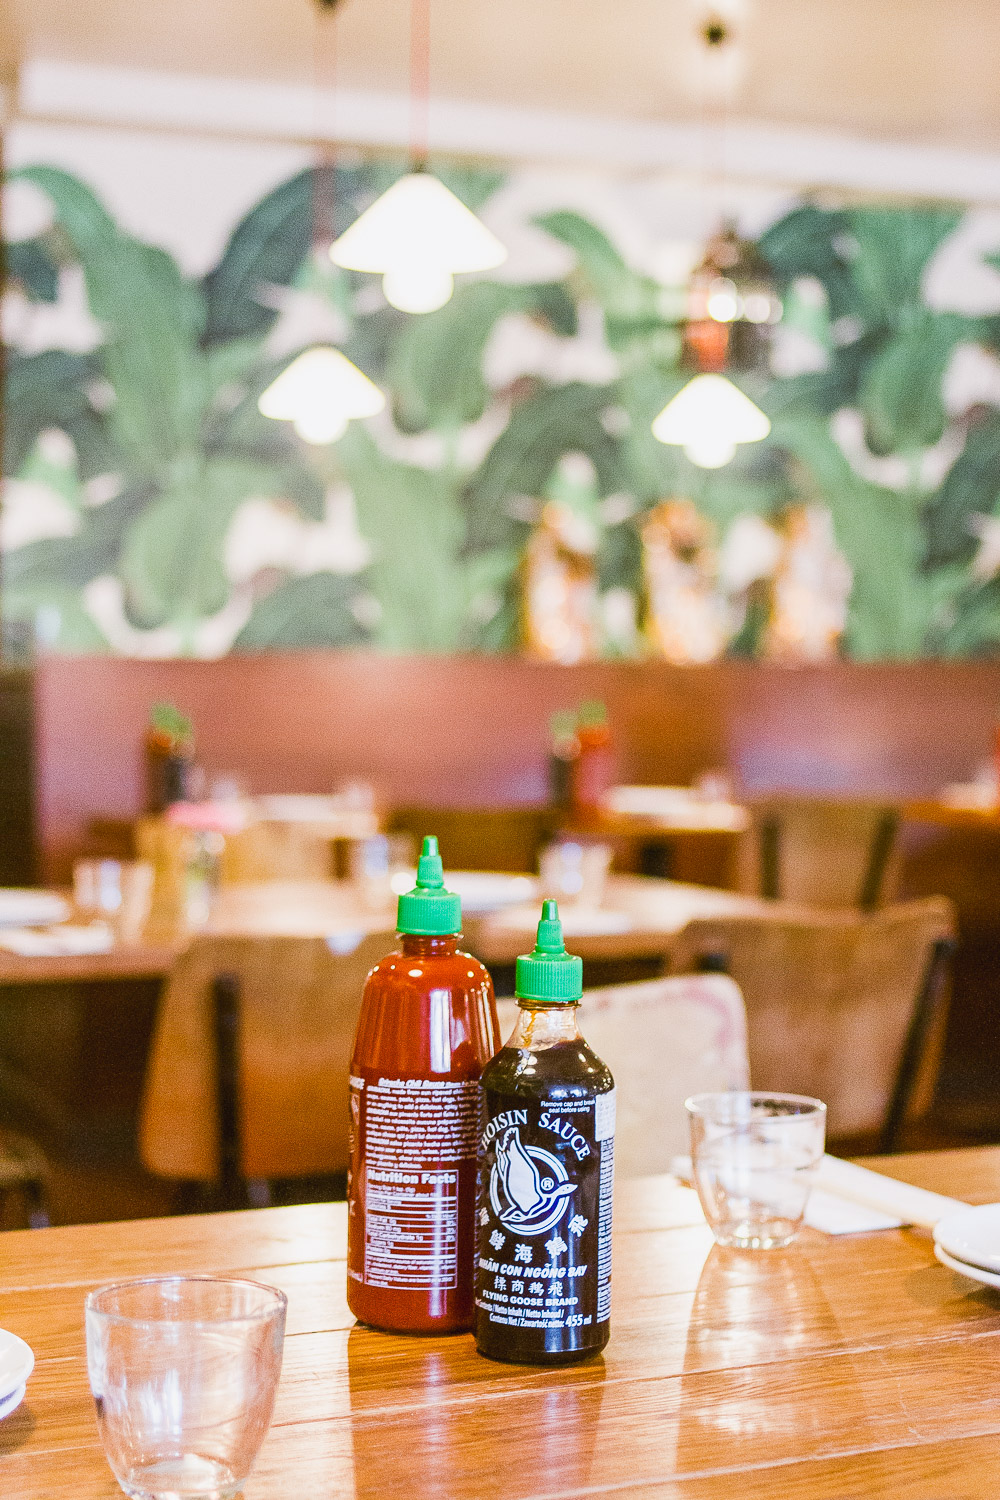 sauces viet Grill Restaurant pho mile Vietnamese modern kingsland road london